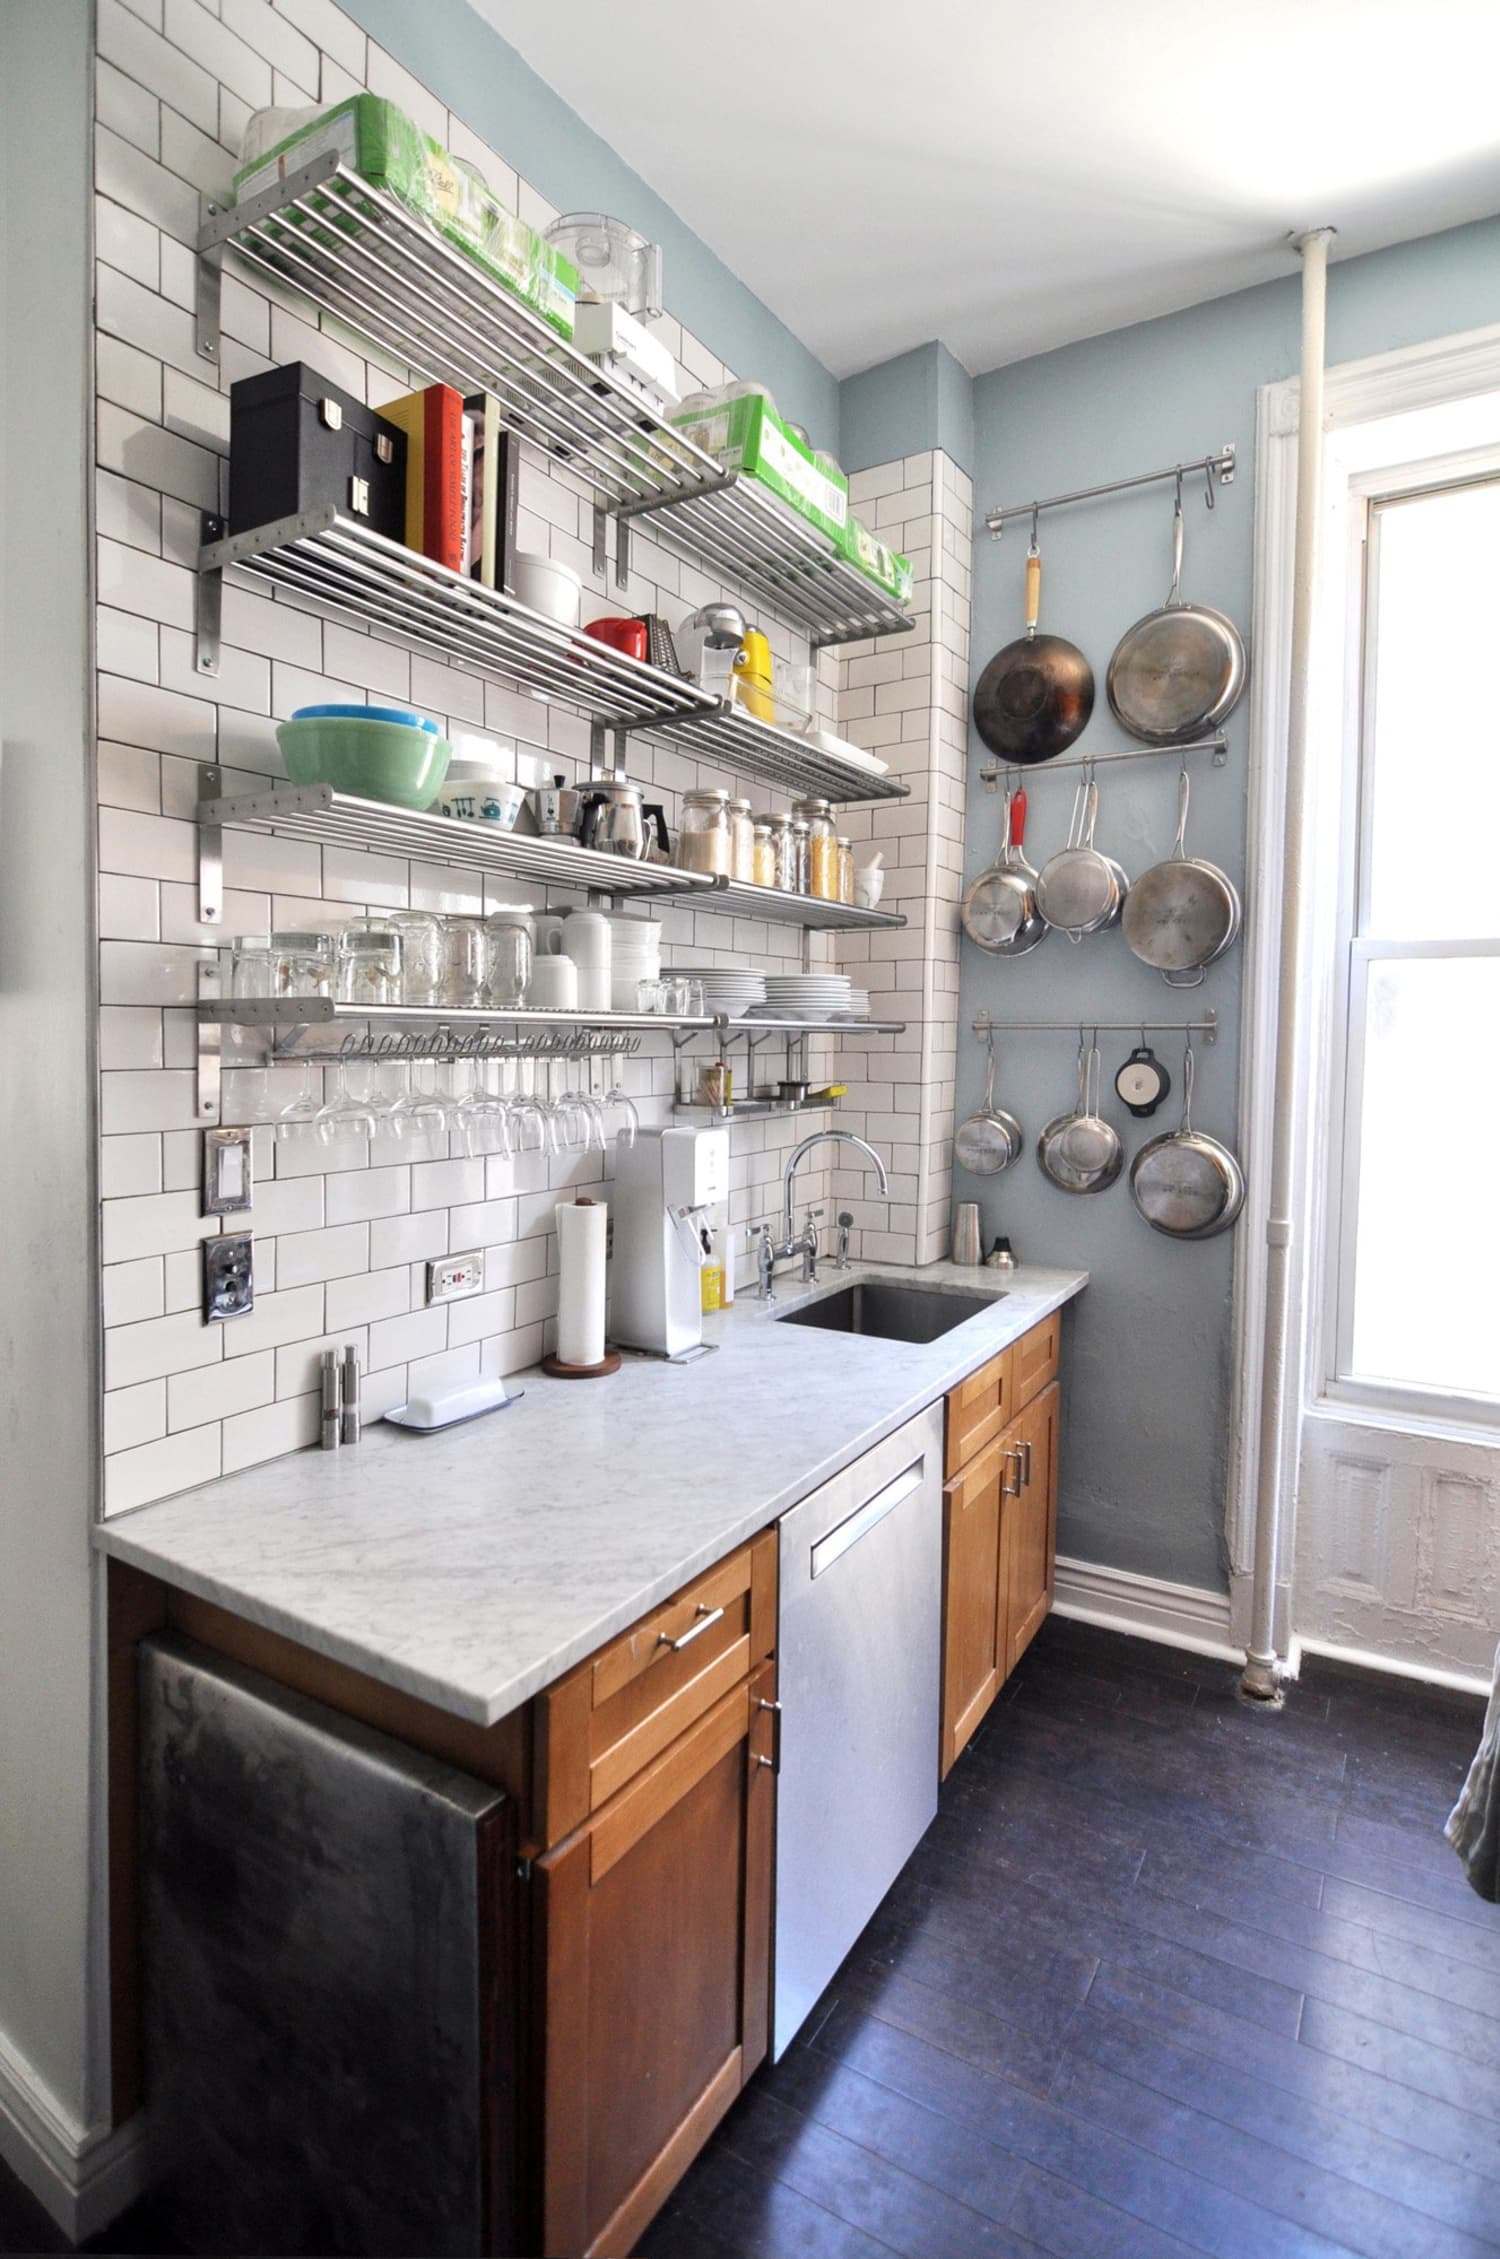 How To Organize A Small Apartment Kitchen A 7 Step Plan Apartment Therapy